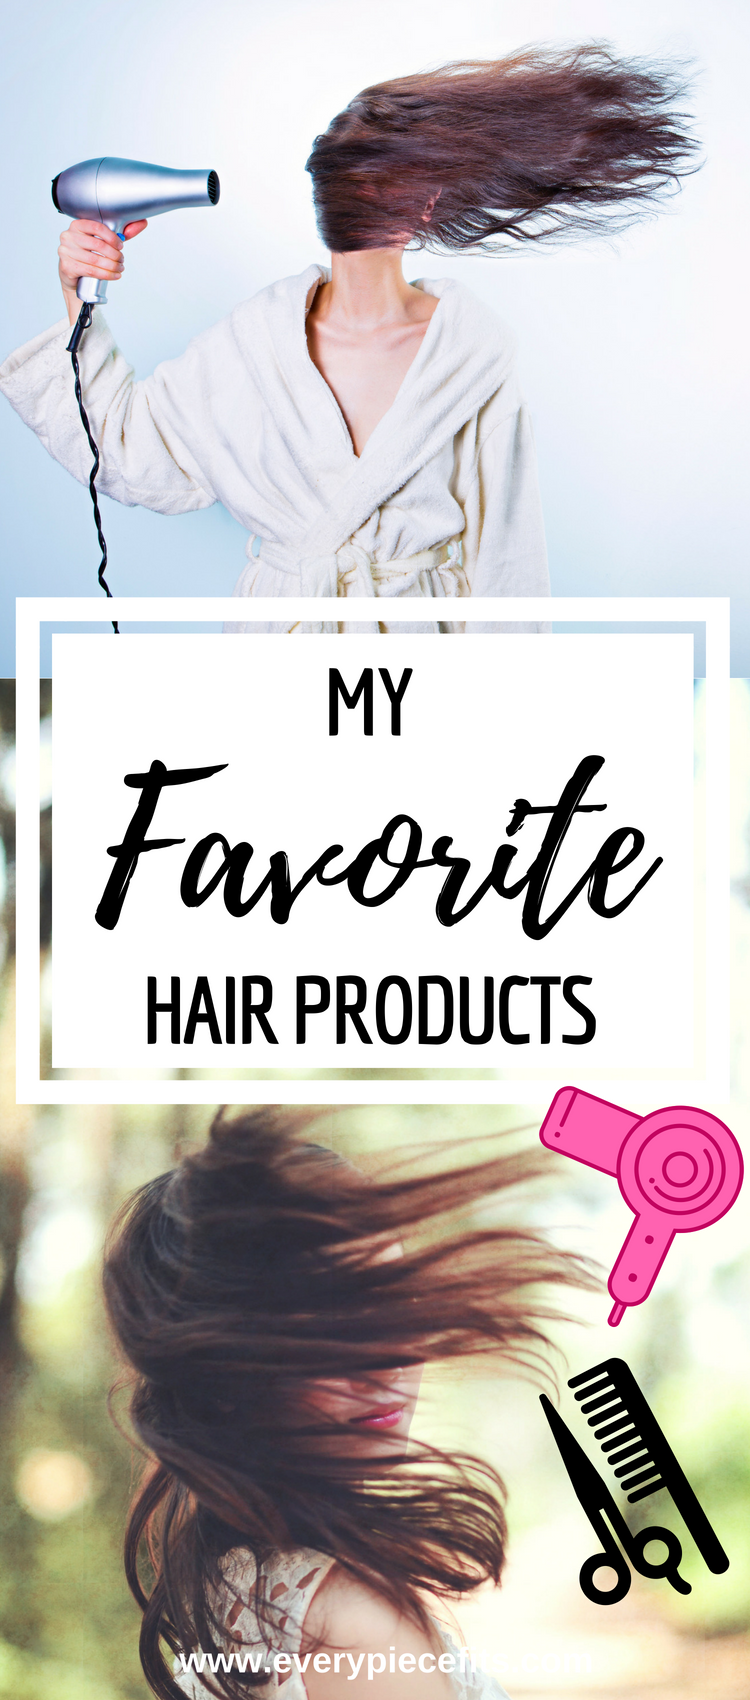 My Favorite Hair Products (1).png